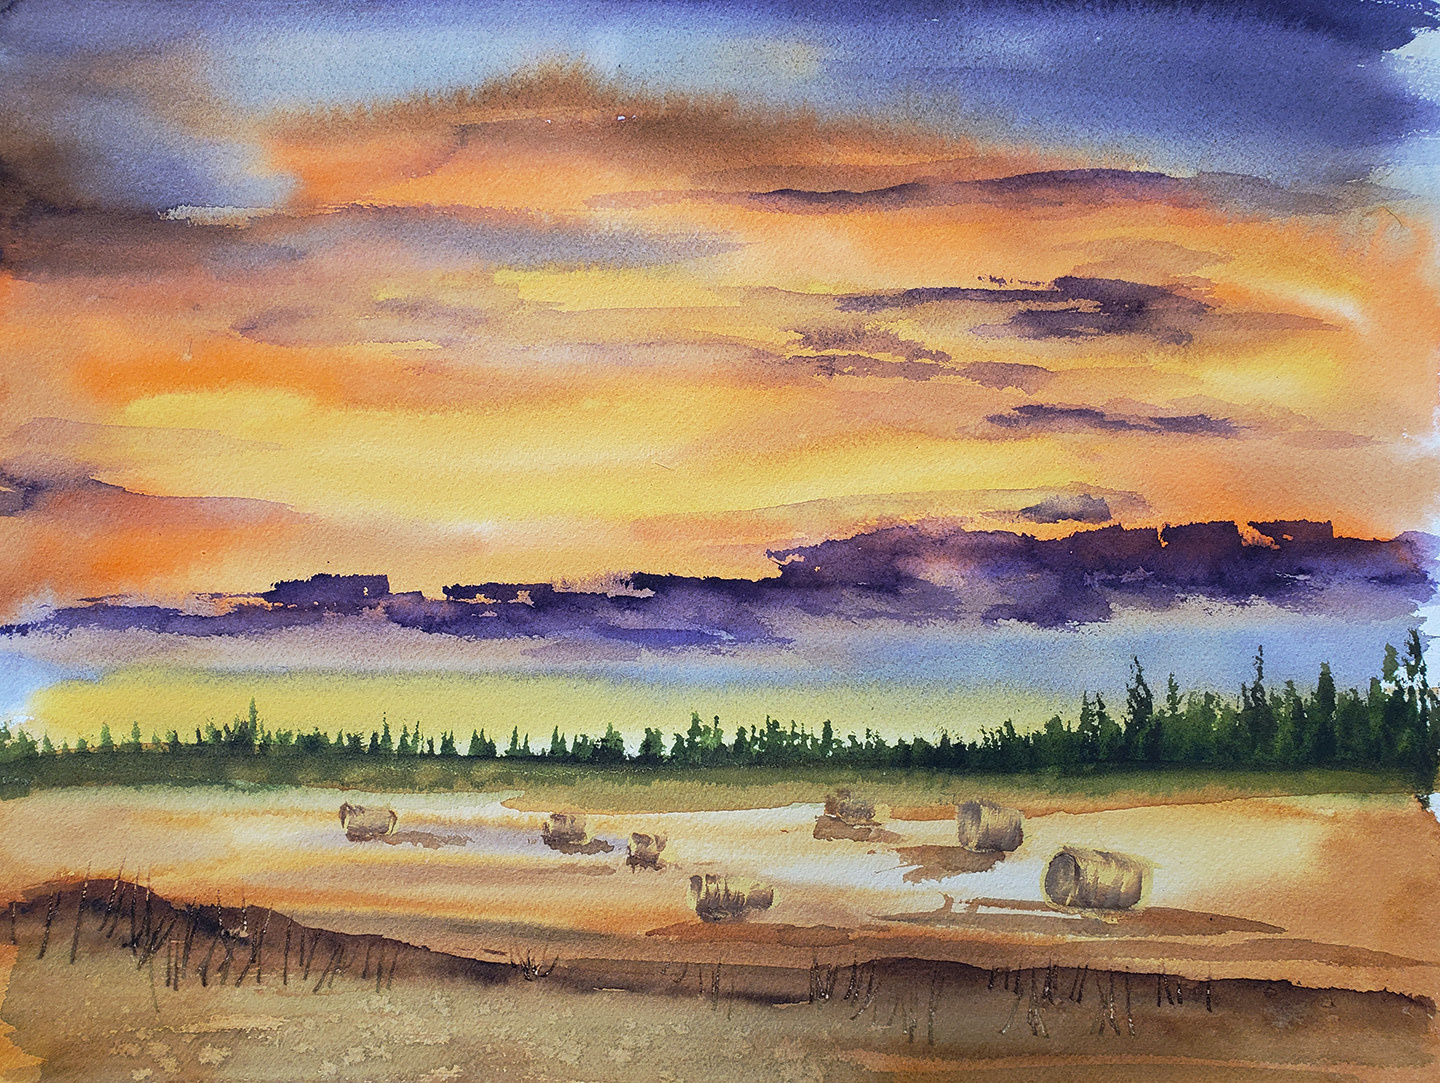 ART CLASS - PRAIRIE SKY WITH HAY BALES IN WATERCOLOUR, SEPTEMBER 10 6-9PM